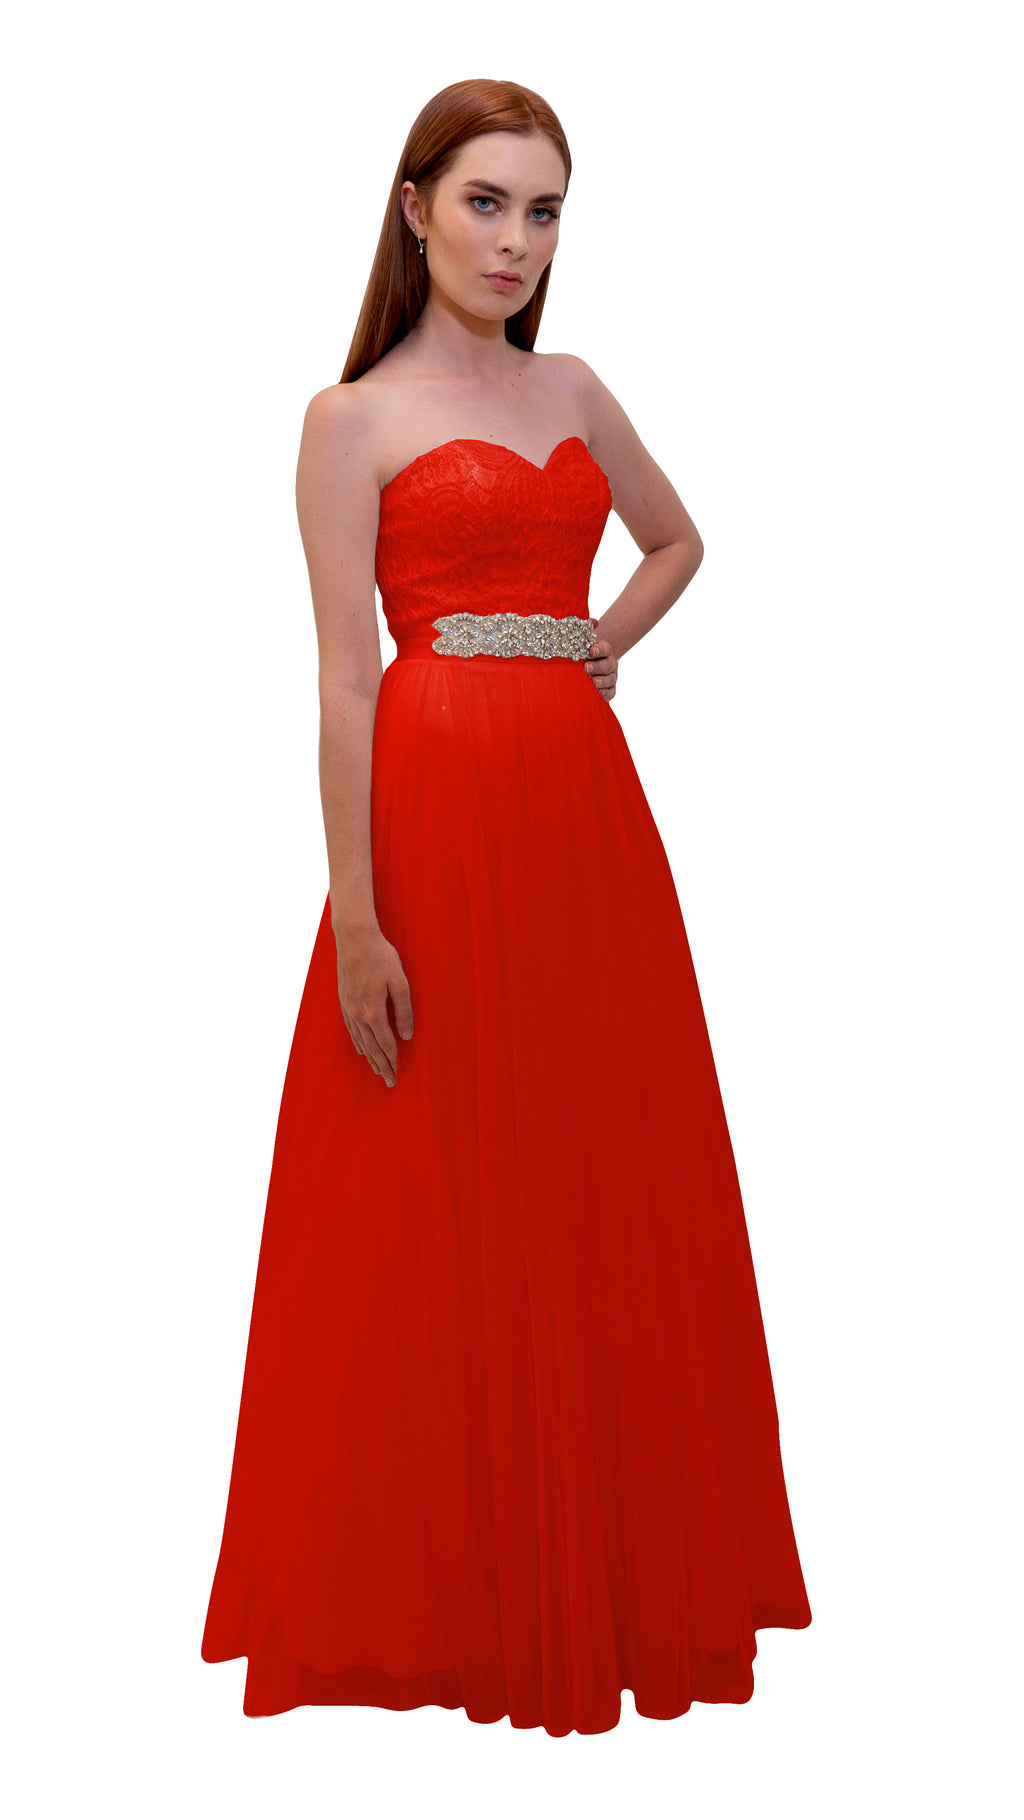 Bariano Mary Lace ball Gown Red